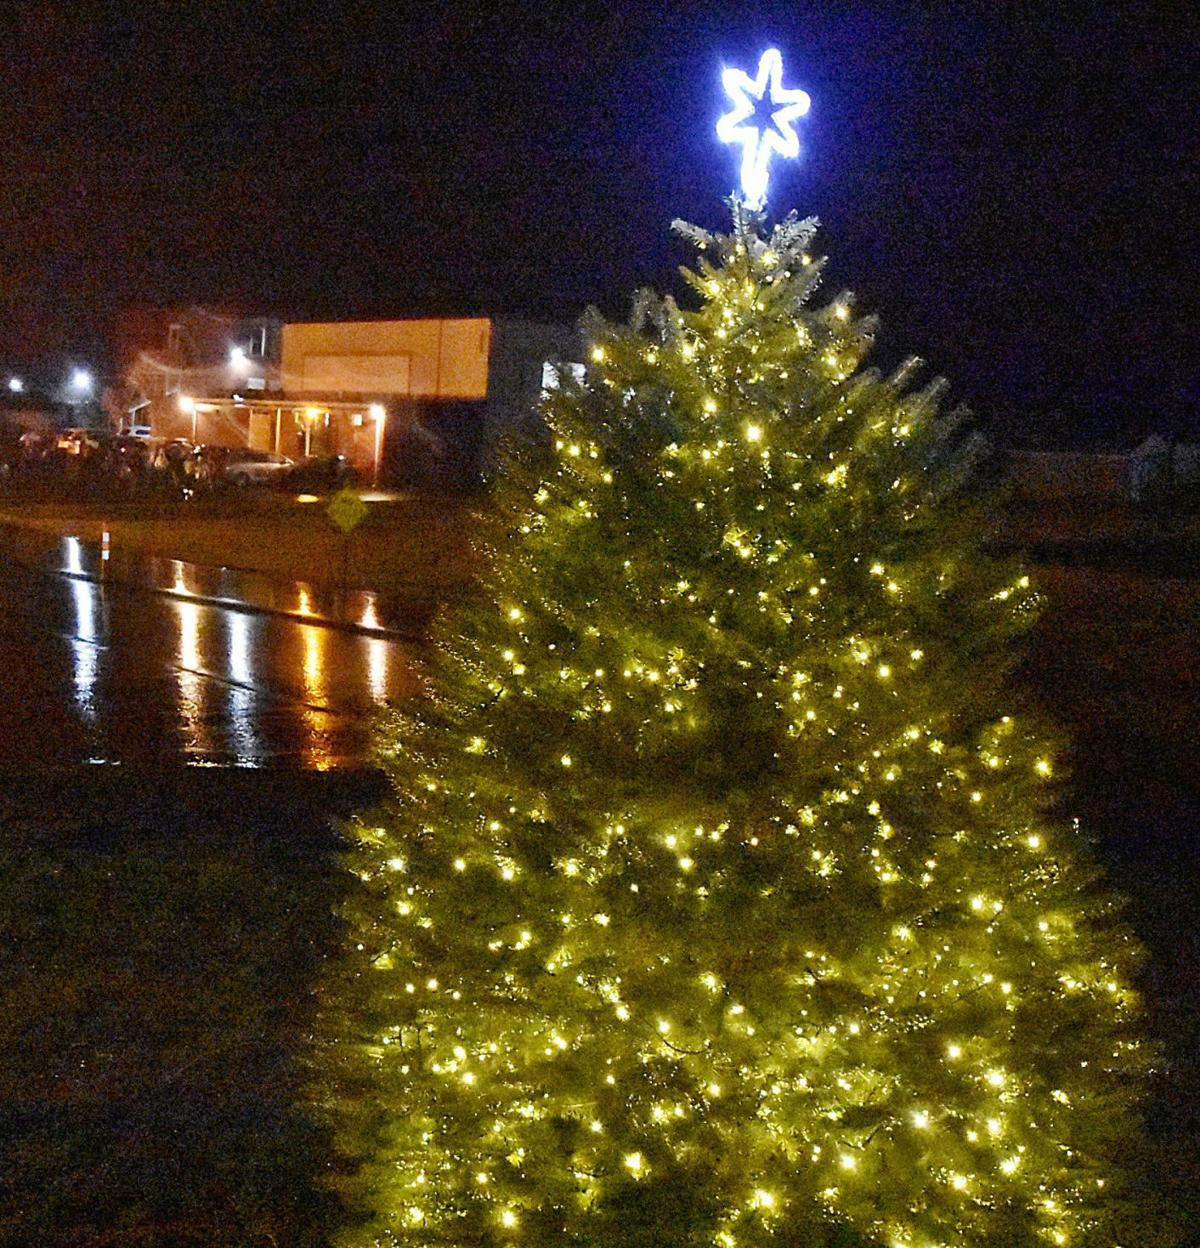 Elysburg Christmas tree illuminated